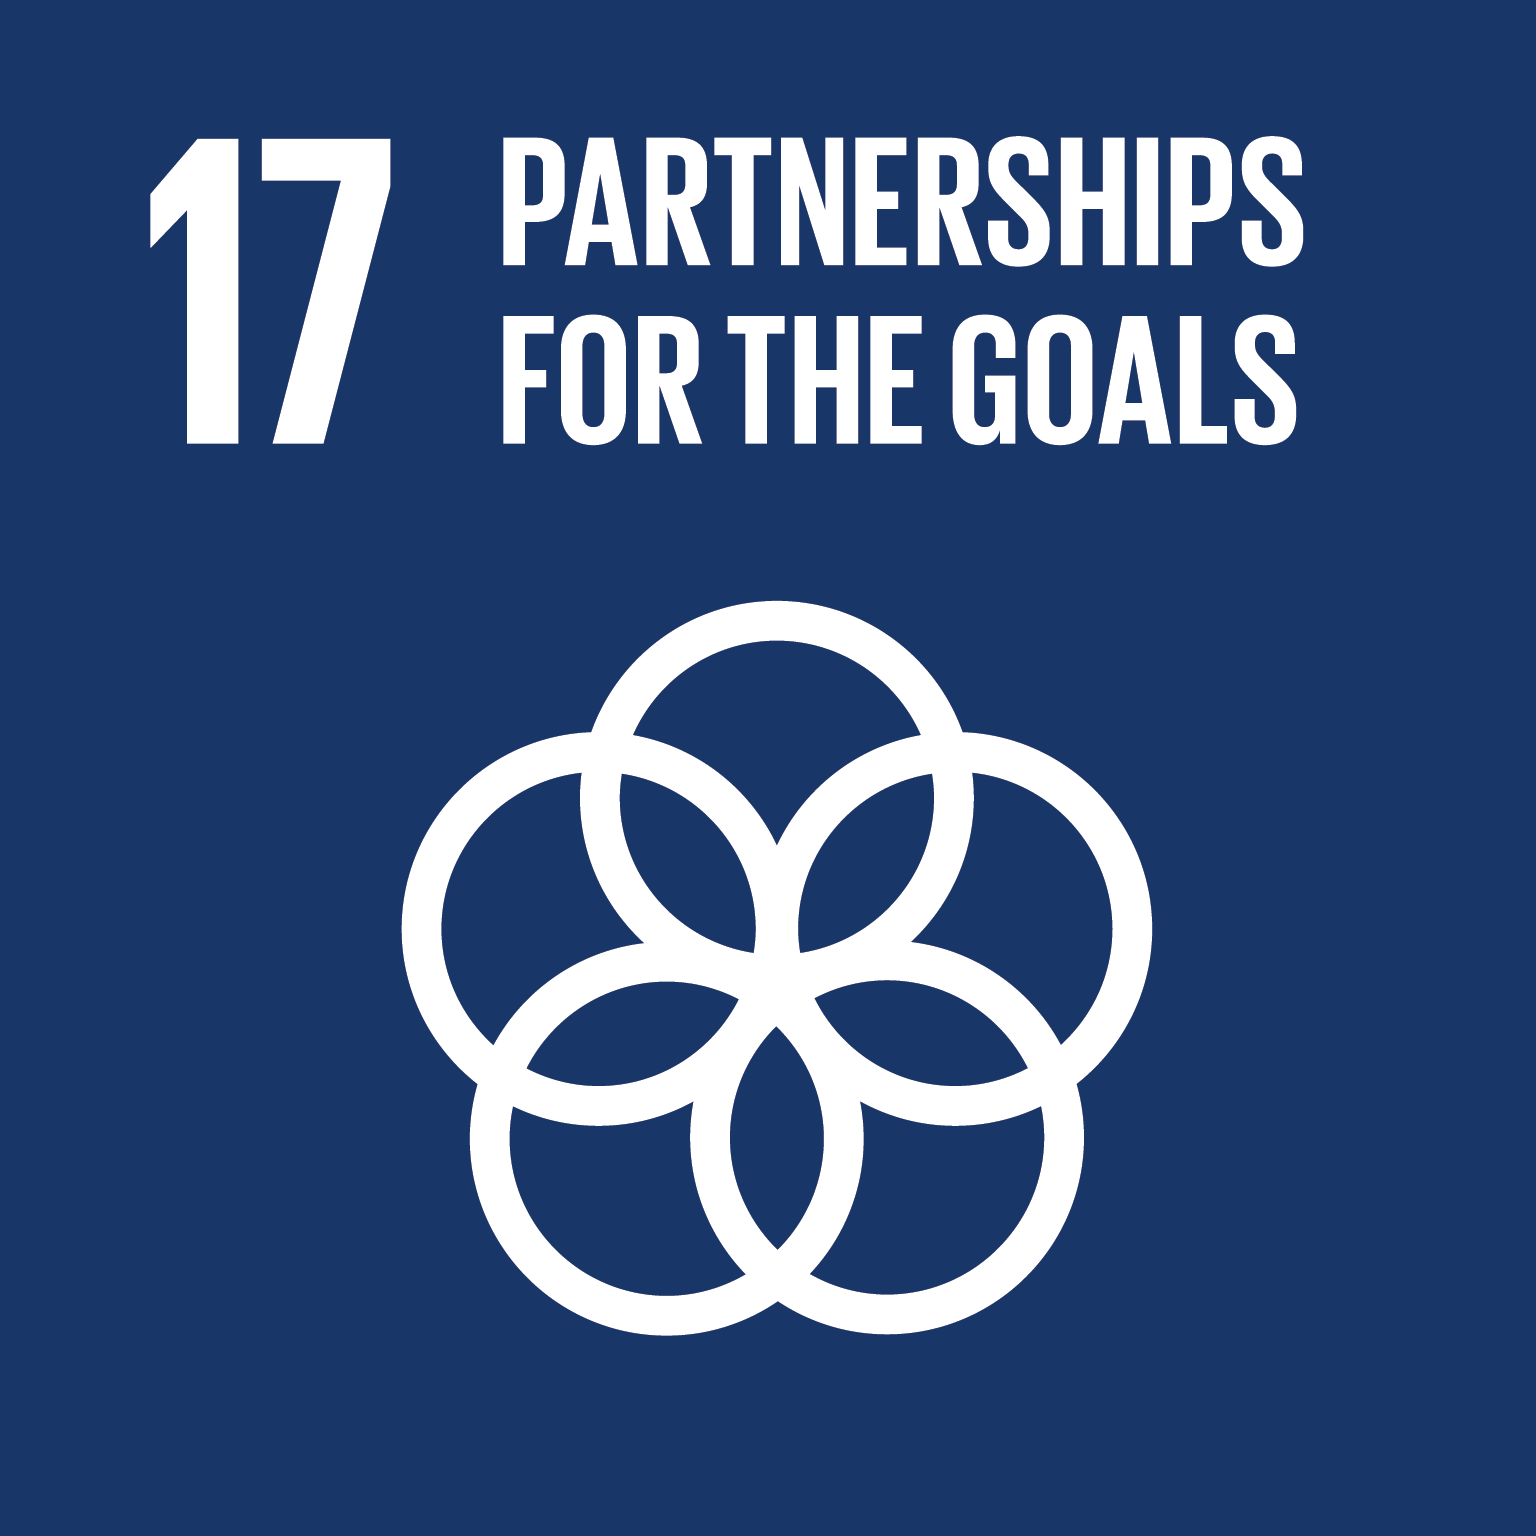 Afbeeldingsresultaat voor sustainable development goals 17